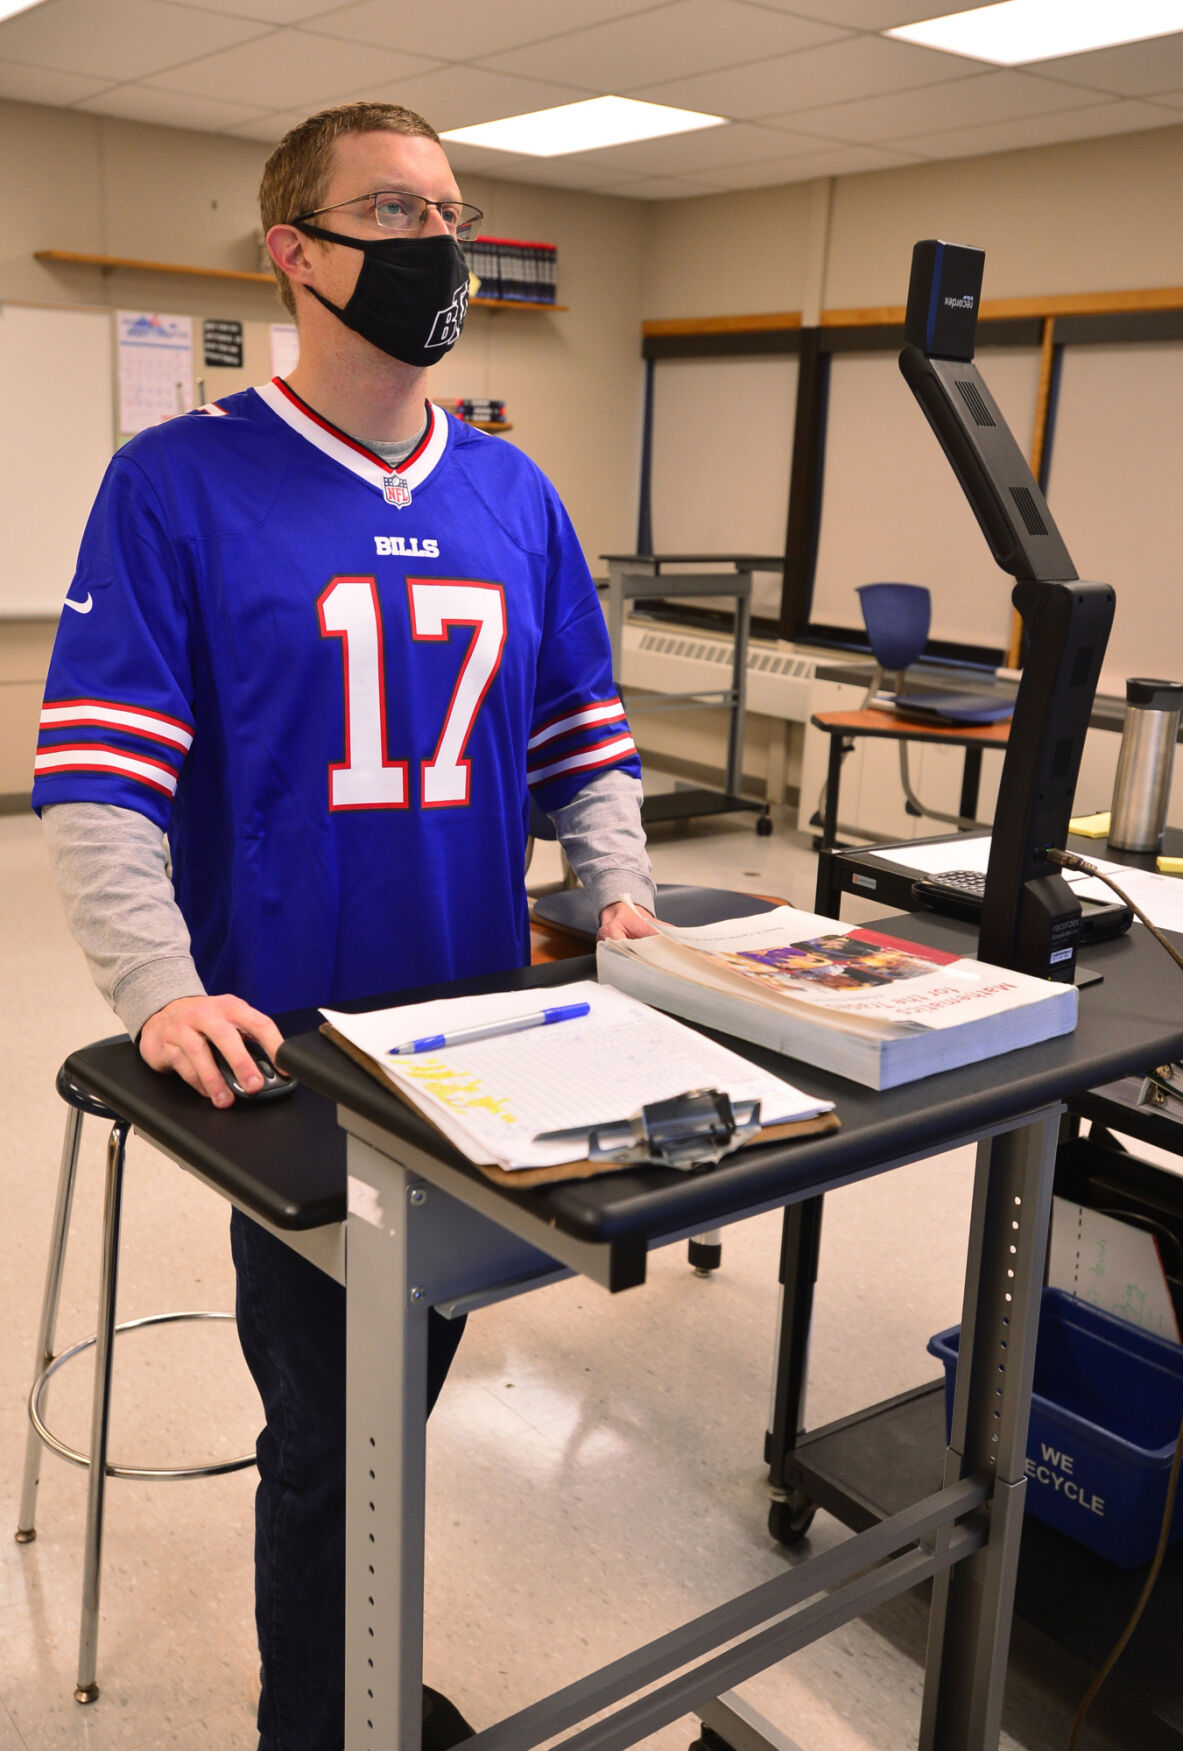 From the garage to the classroom